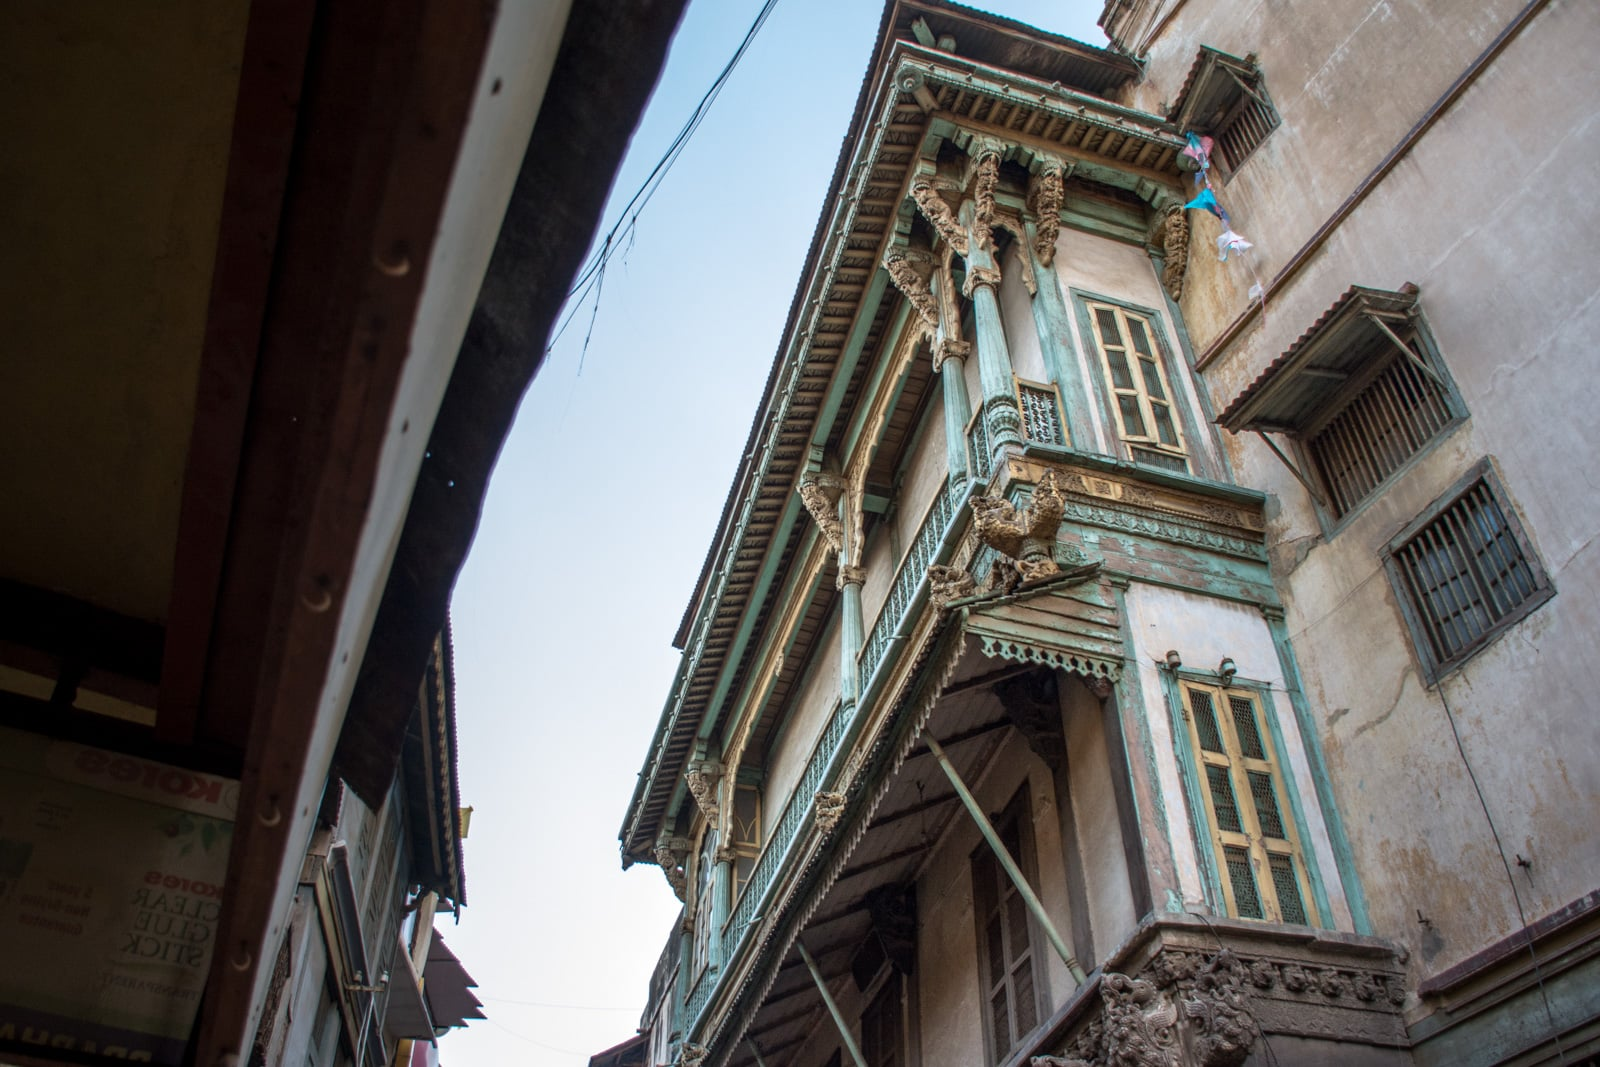 Weekend guide to Ahmedabad, Gujarat, India - A traditional wooden house in the UNESCO old city - Lost With Purpose travel blog